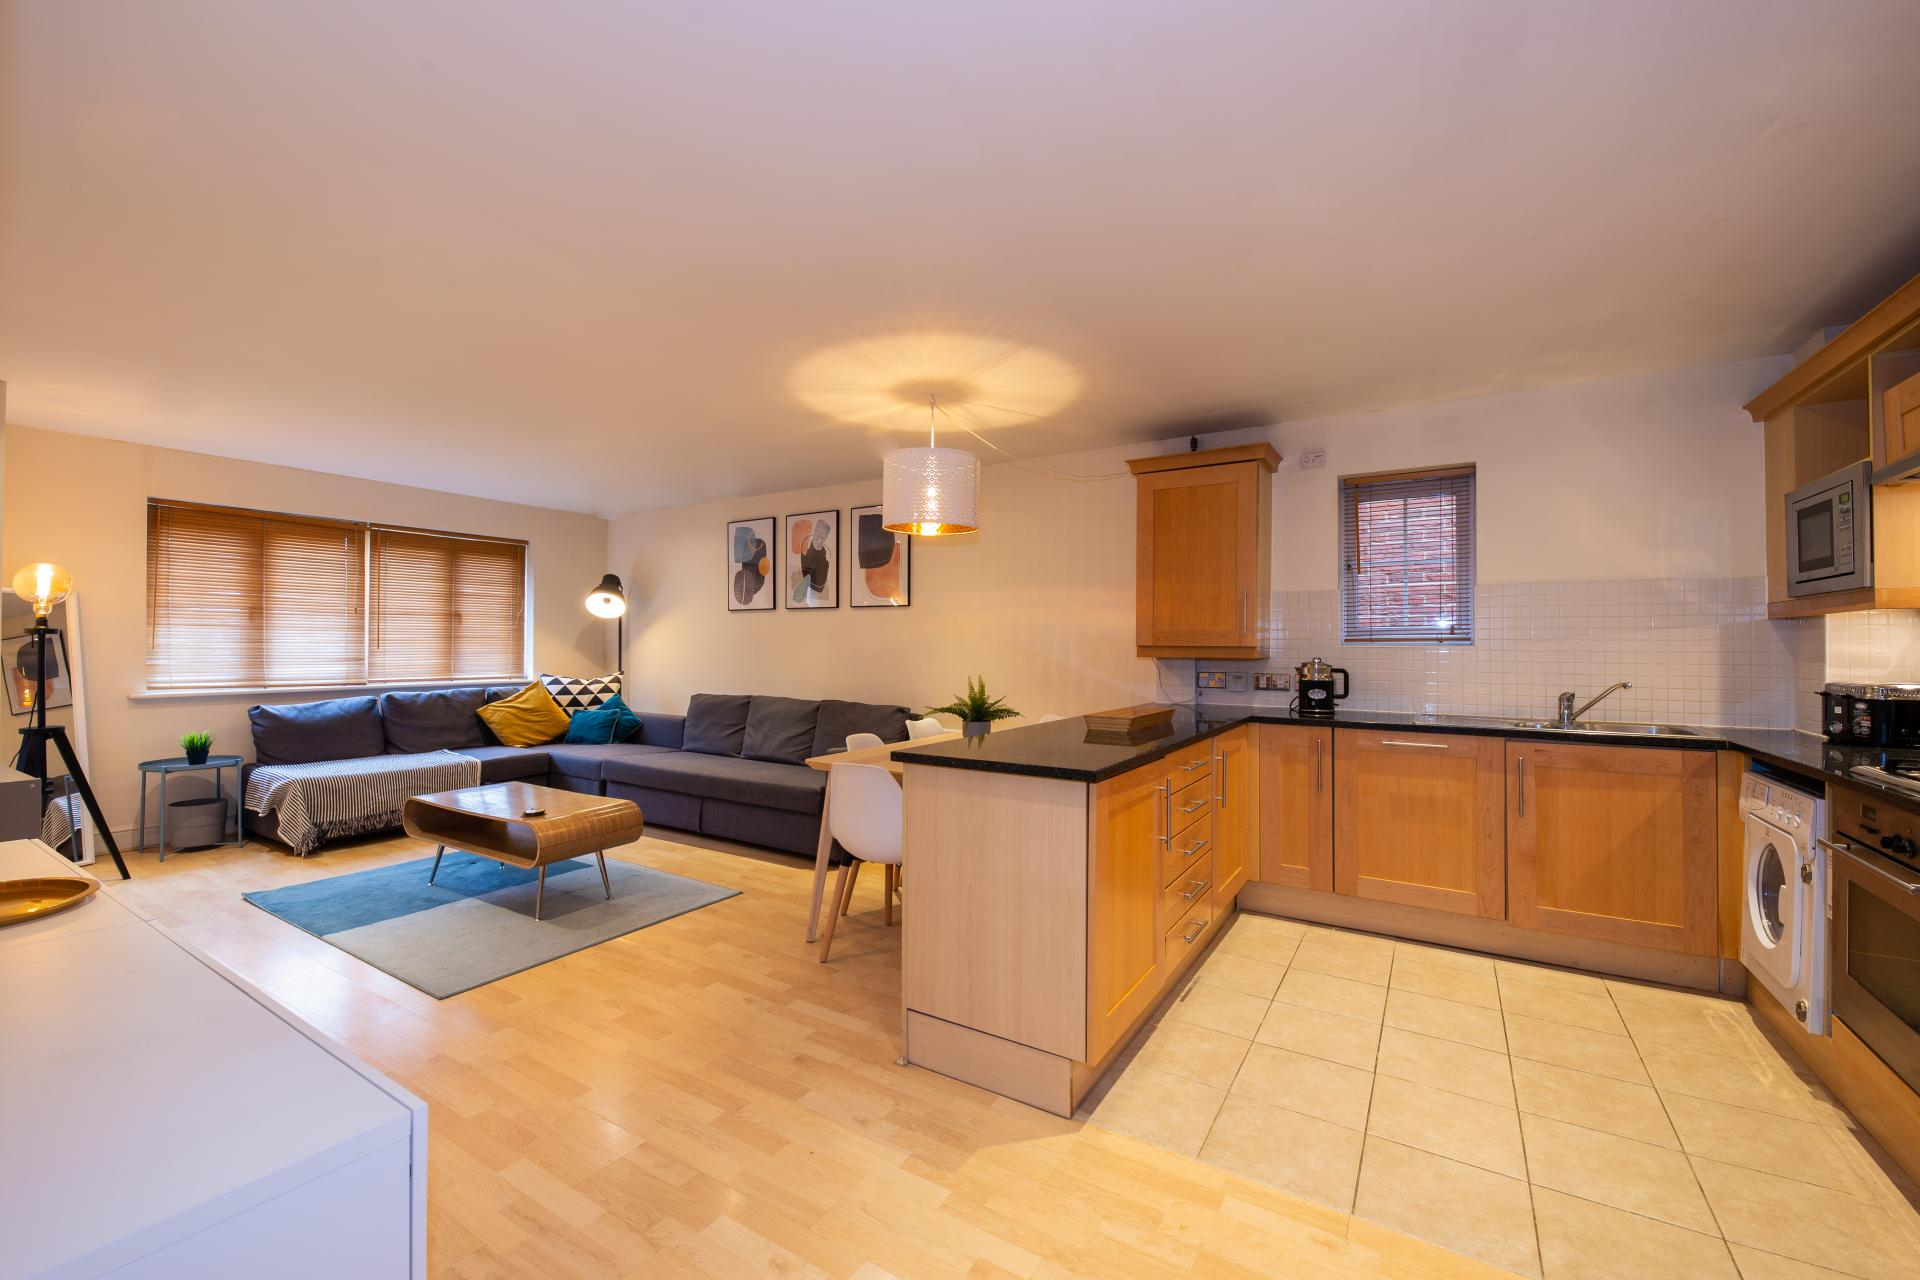 Layout at Guildown Court Apartment, Centre, Guildford - Citybase Apartments